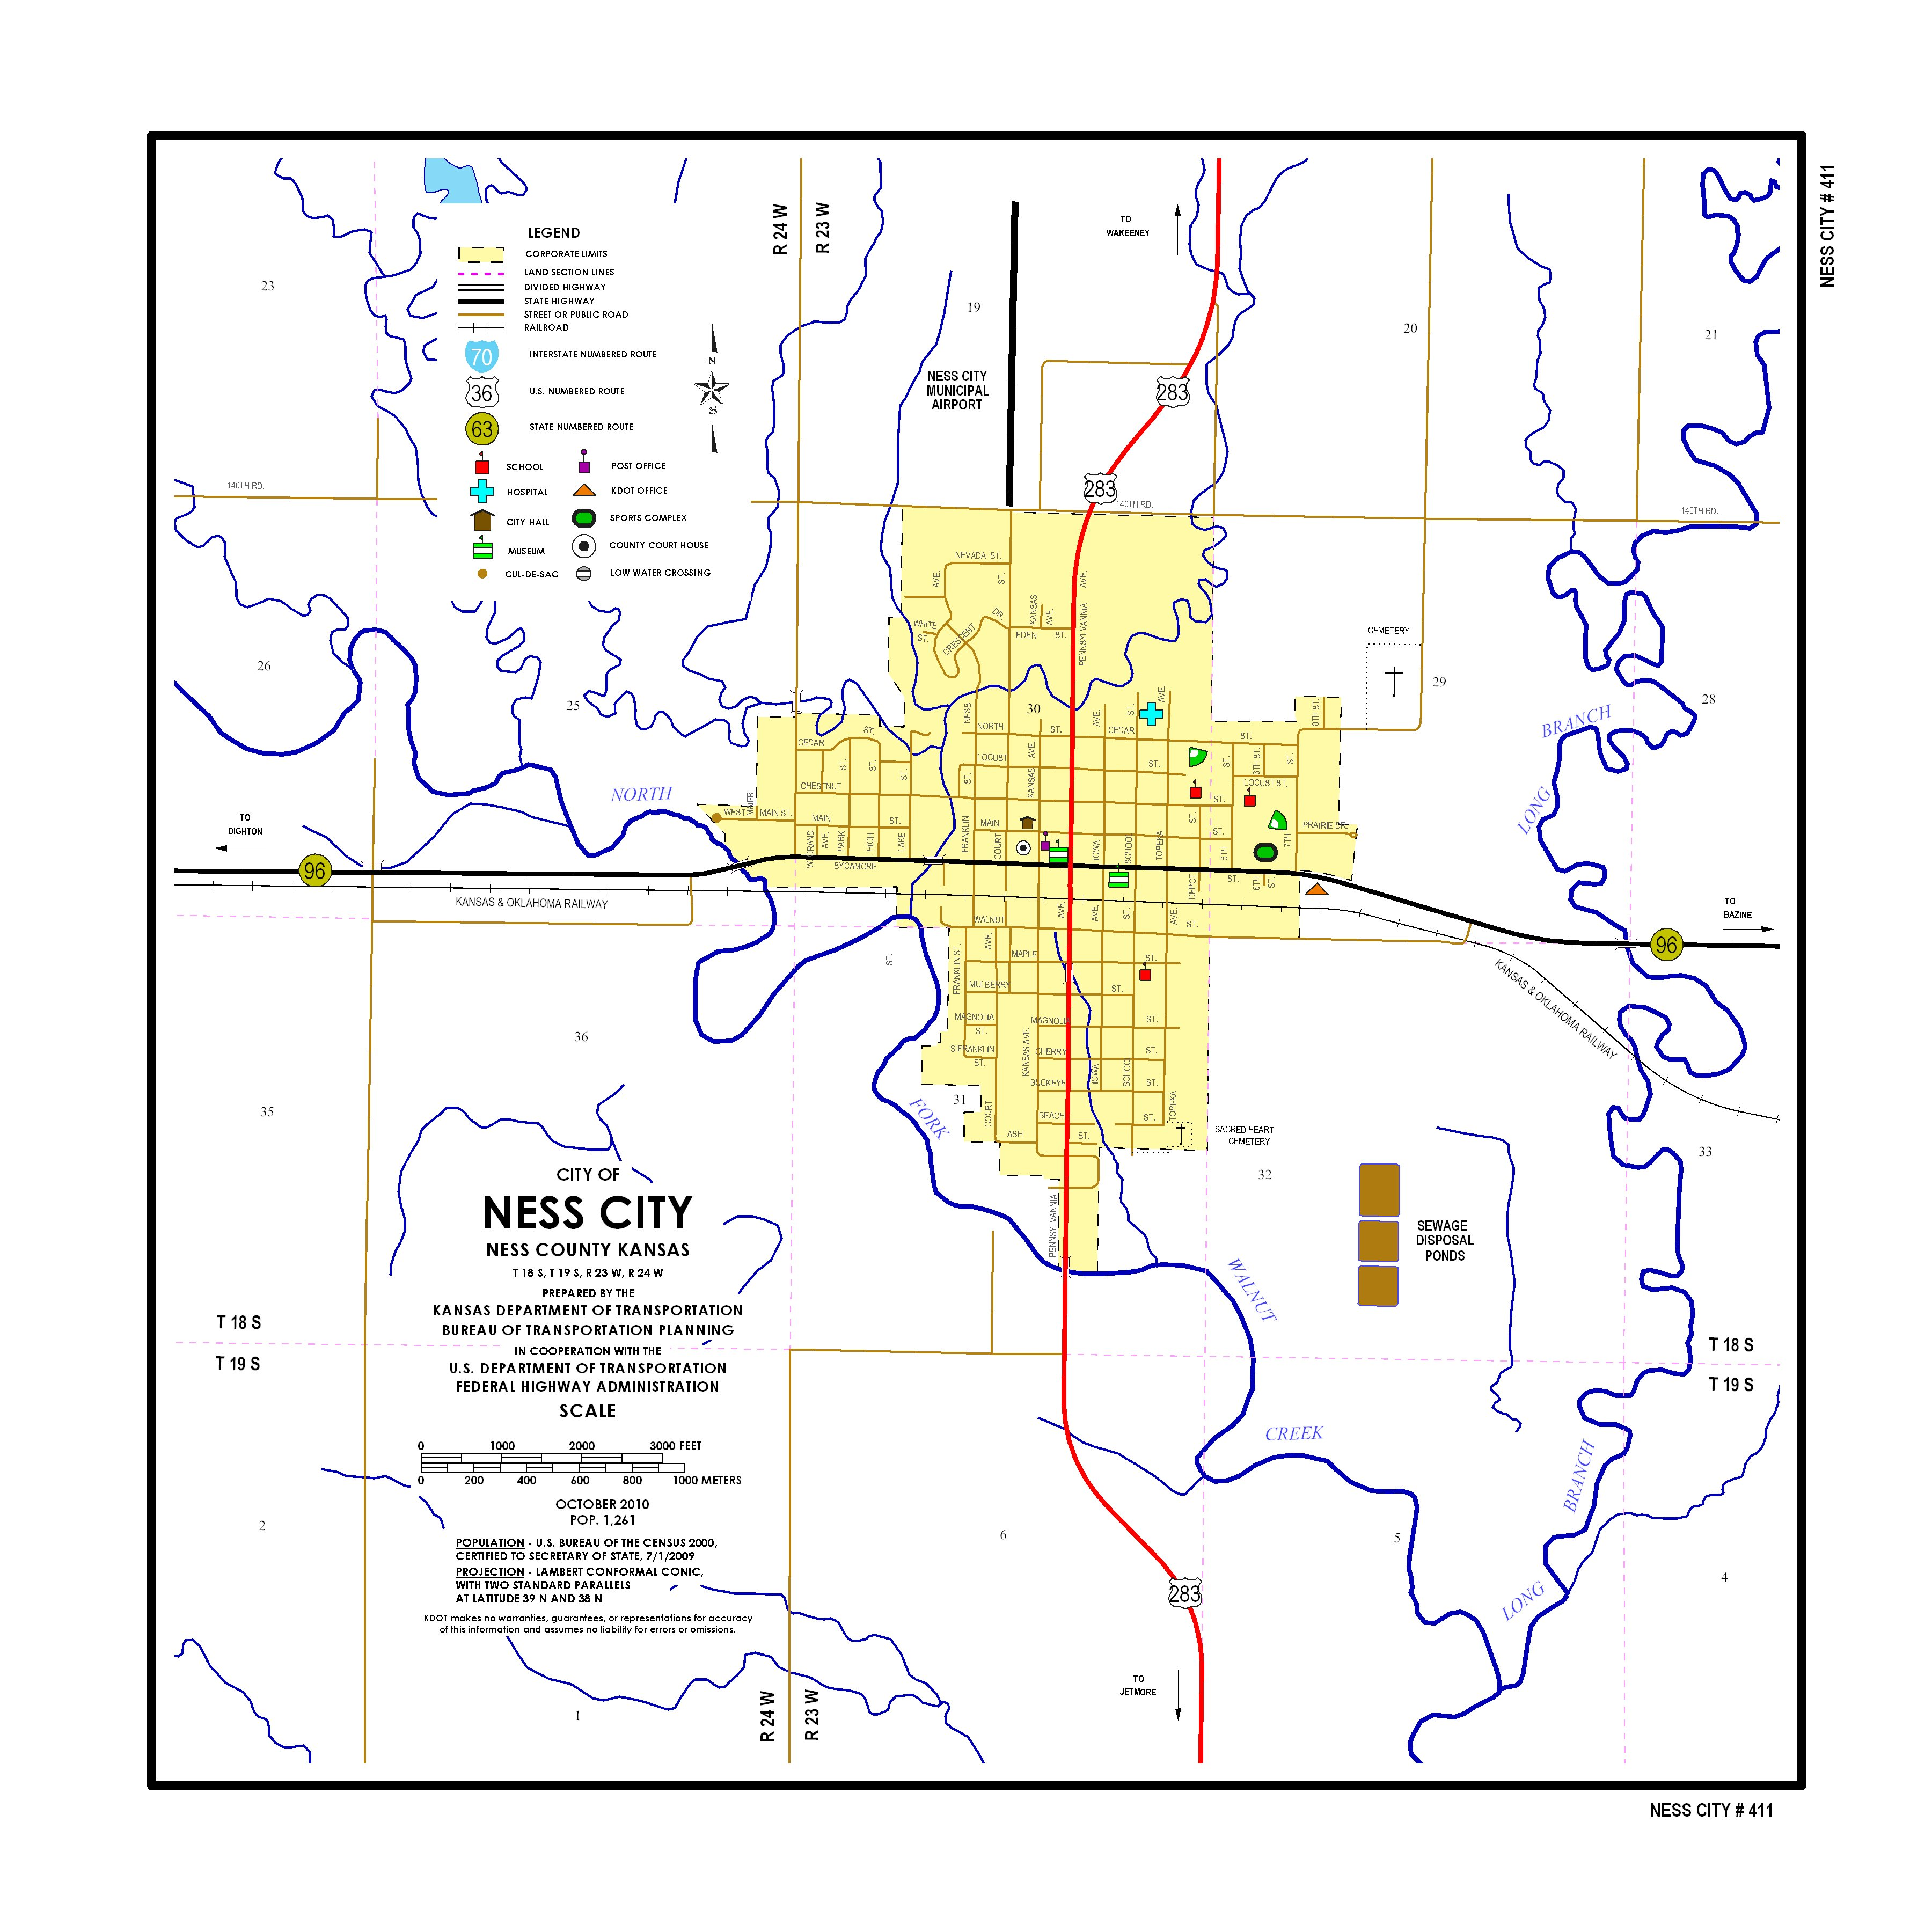 Junction City Kansas Map.Kdot City Maps Sorted By City Name